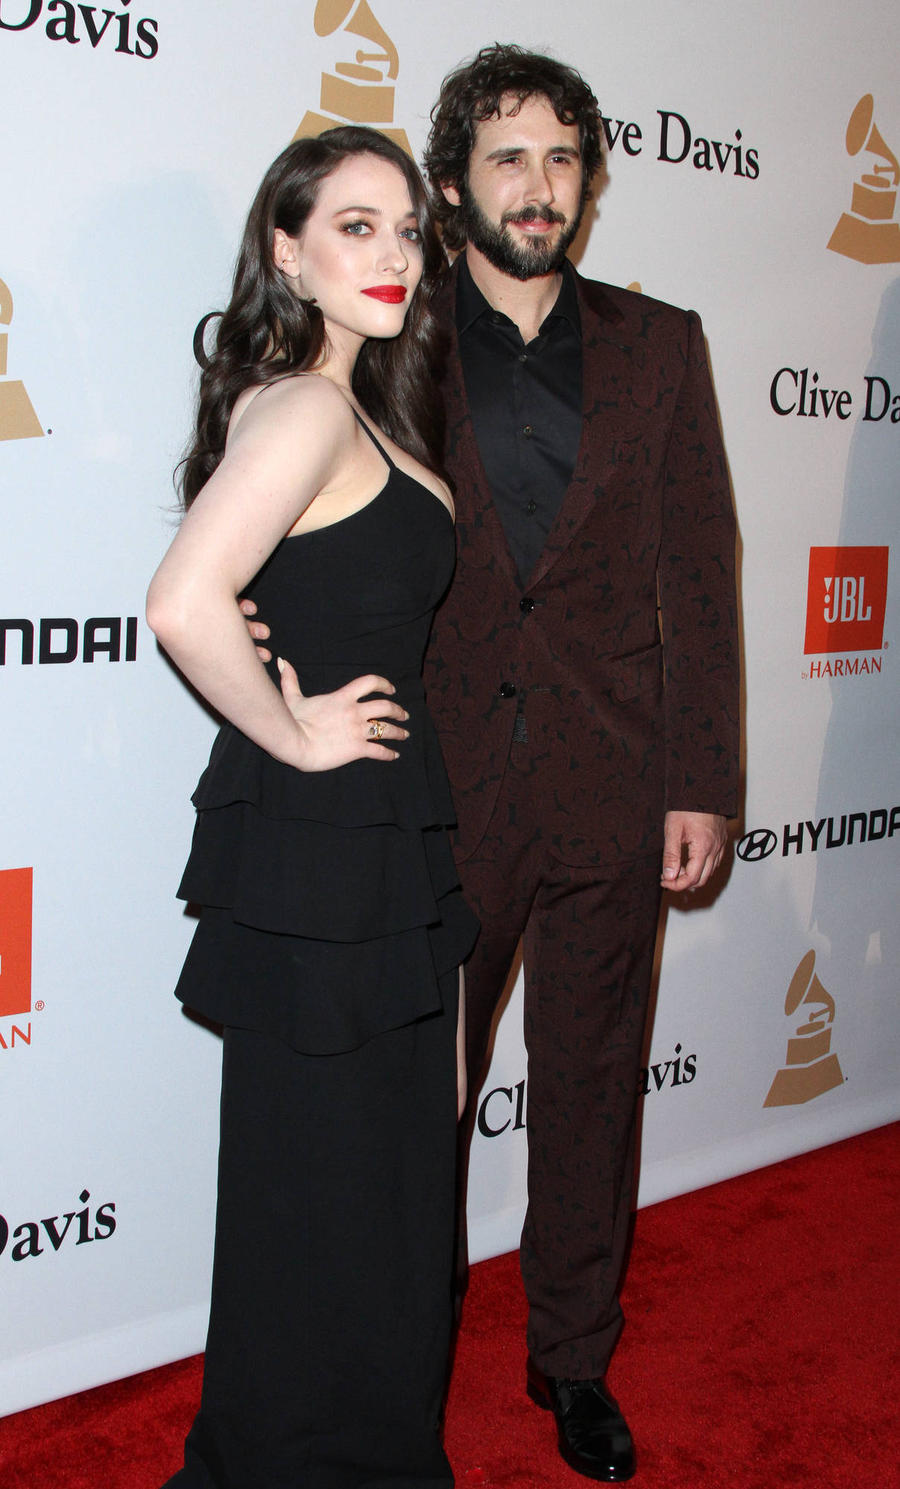 Josh Groban And Kat Dennings Split - Report